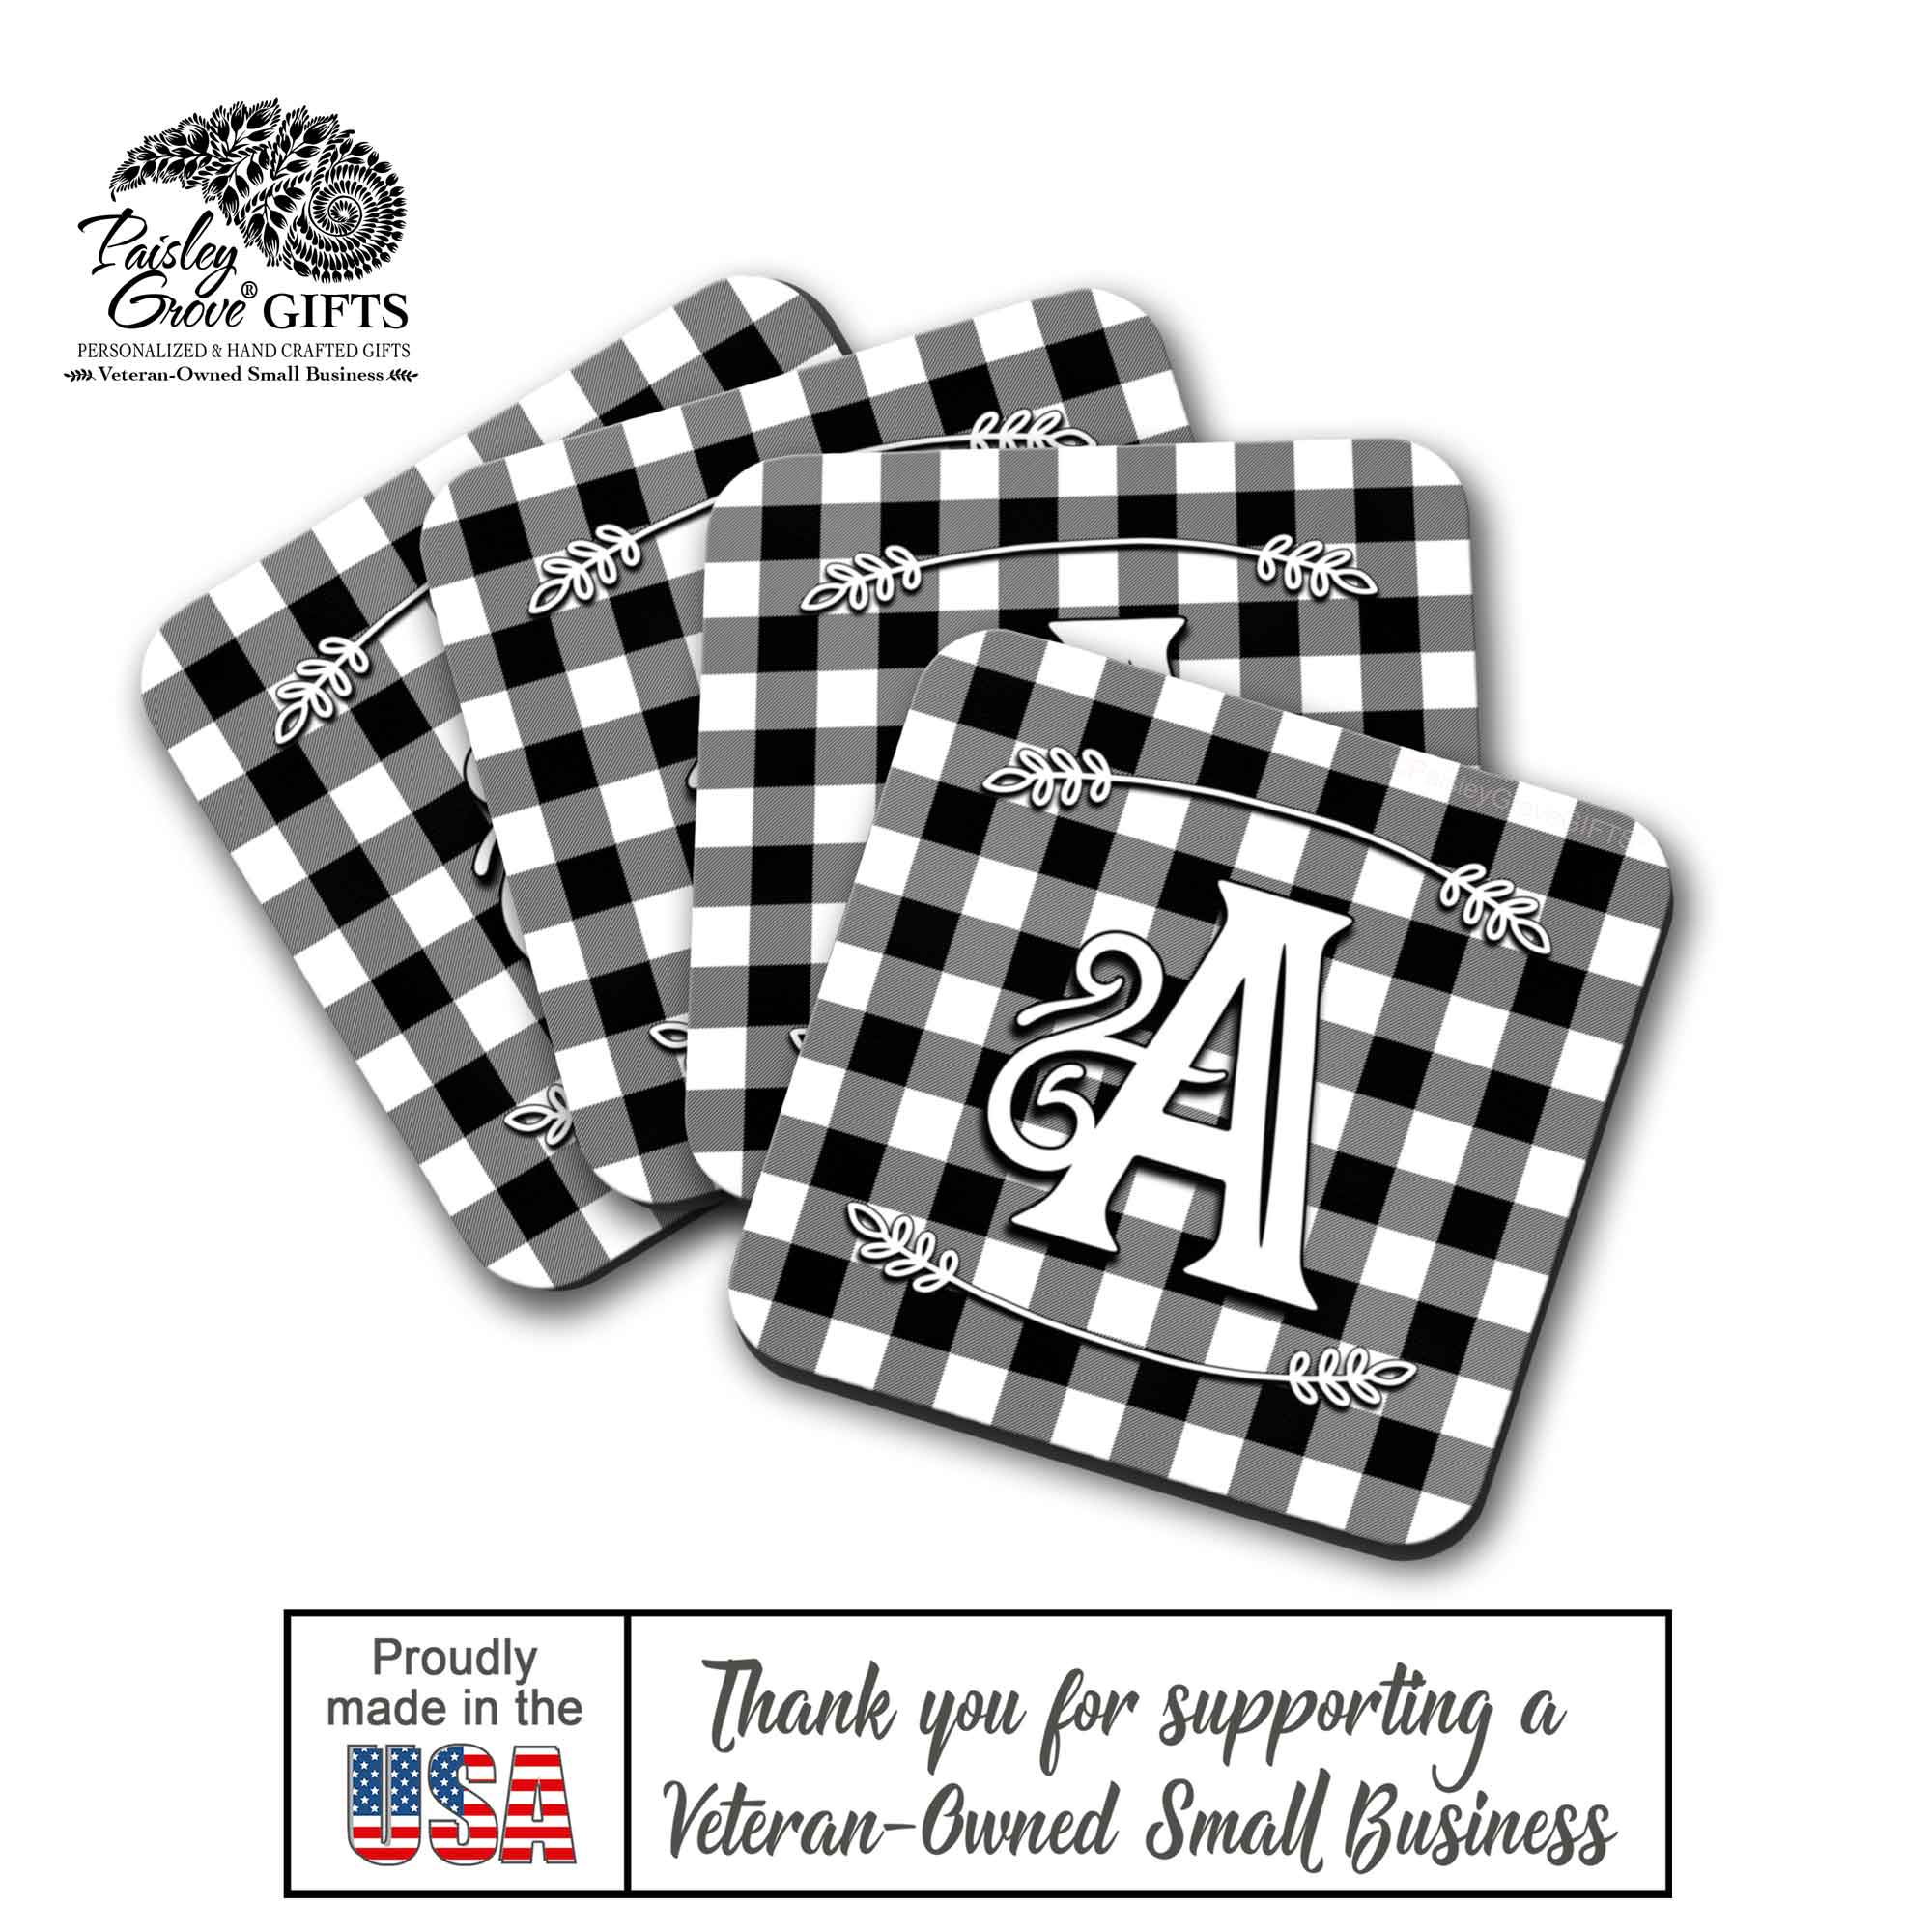 CopyrightPaisleyGroveGIFTS S704d Quality Drink Coasters for Christmas Made In the USA by a Military Veteran